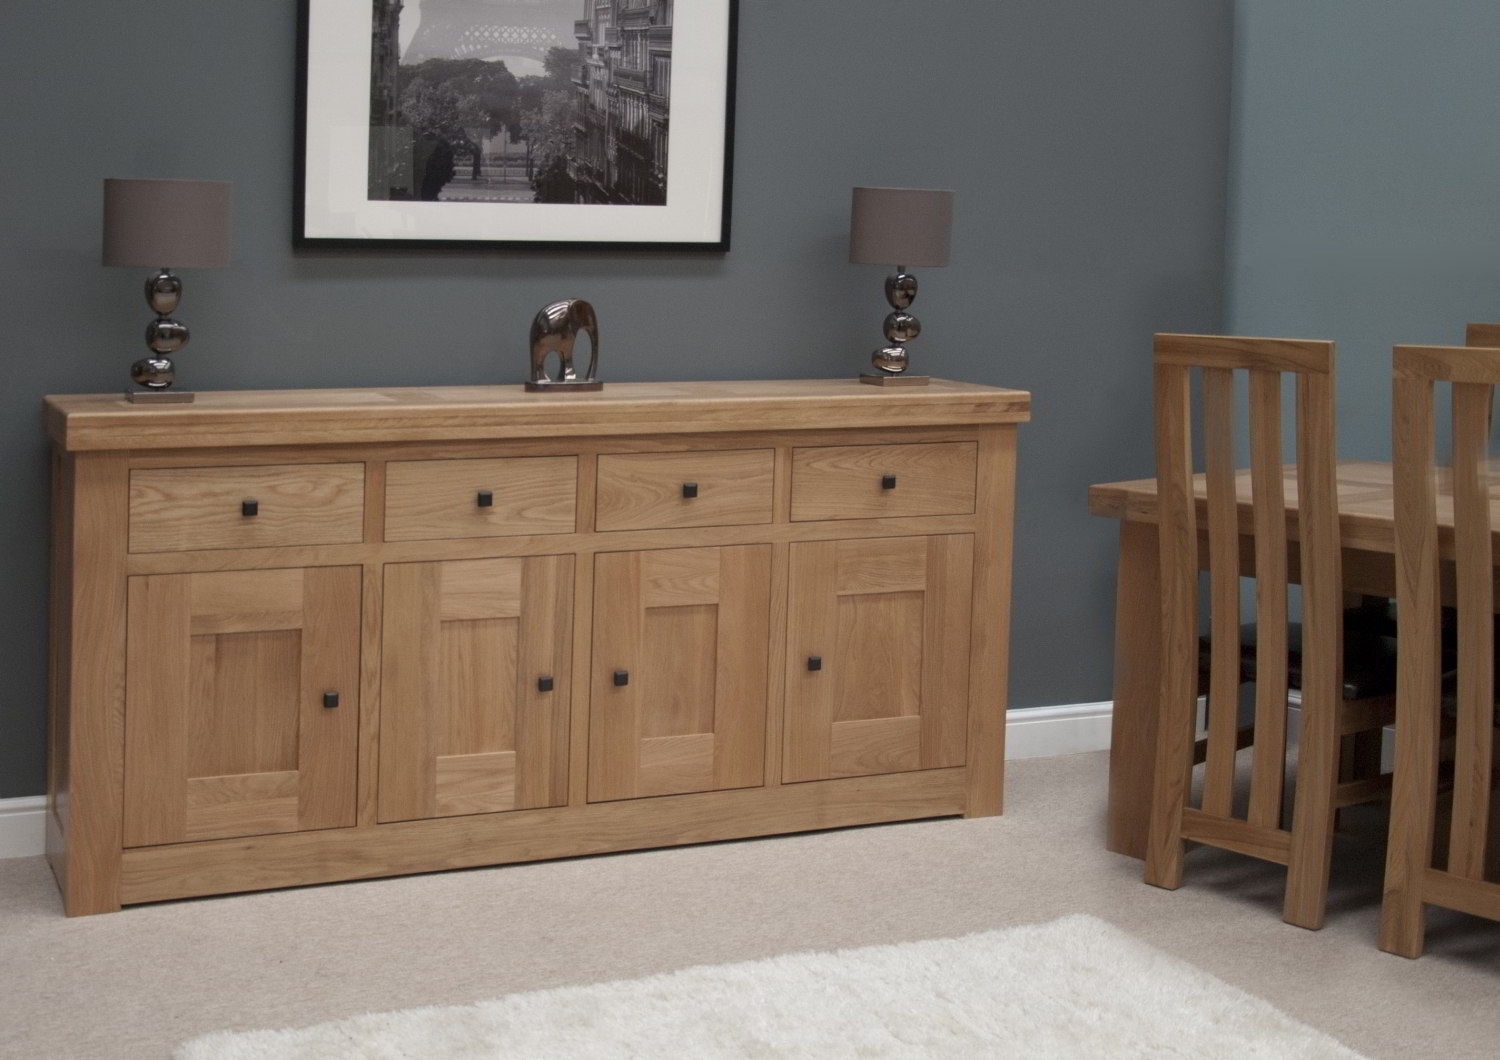 Belgrave Solid Premium Oak Dining Room Furniture Extra Large Storage Sideboard